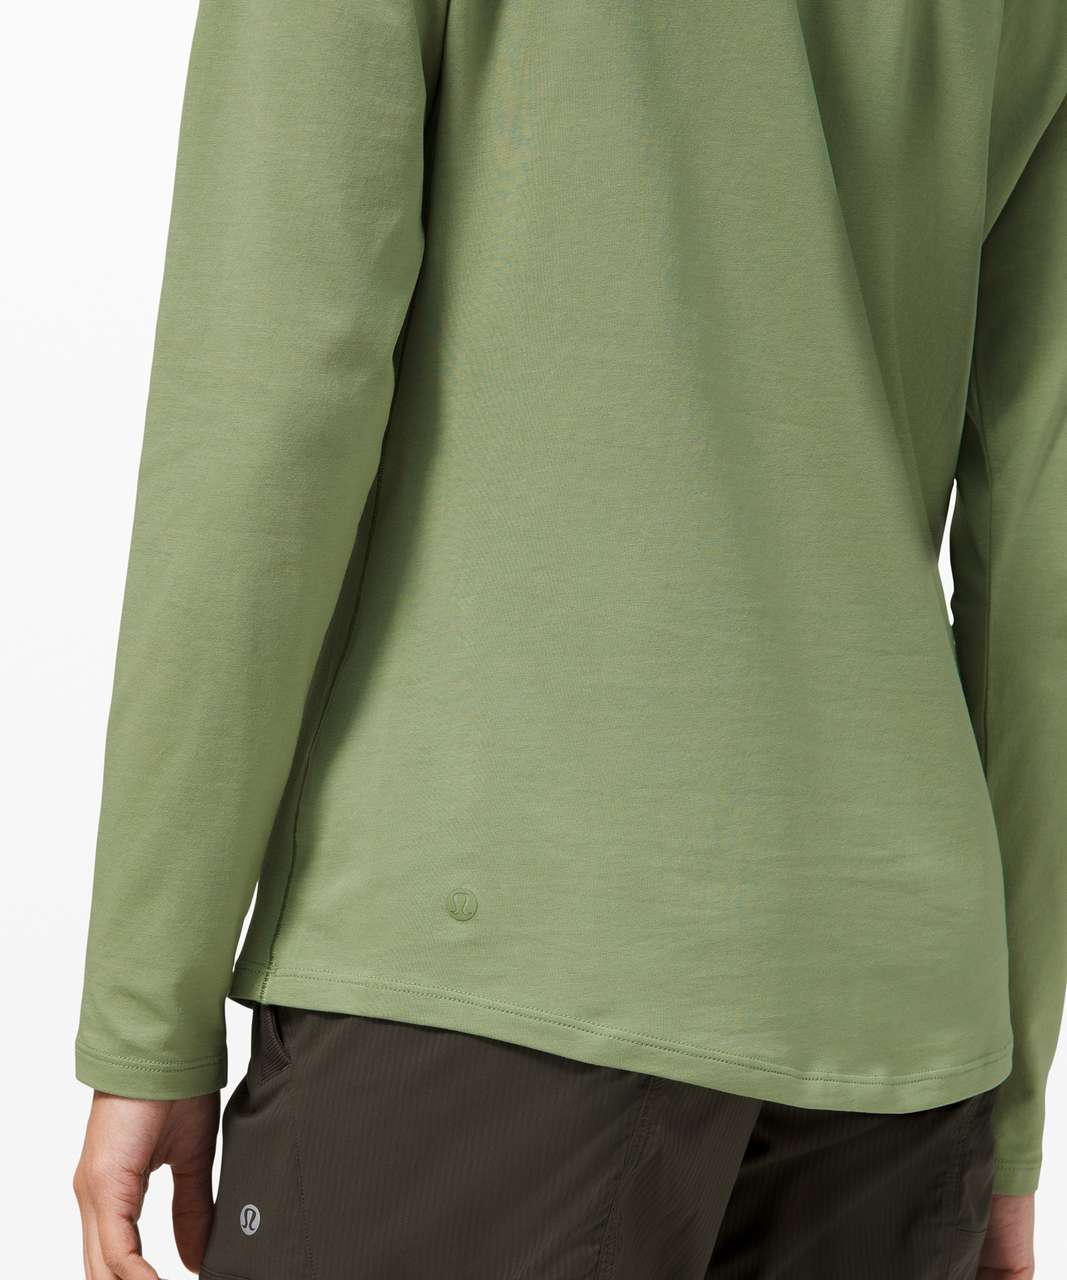 Lululemon Ever Ready Long Sleeve - Willow Green